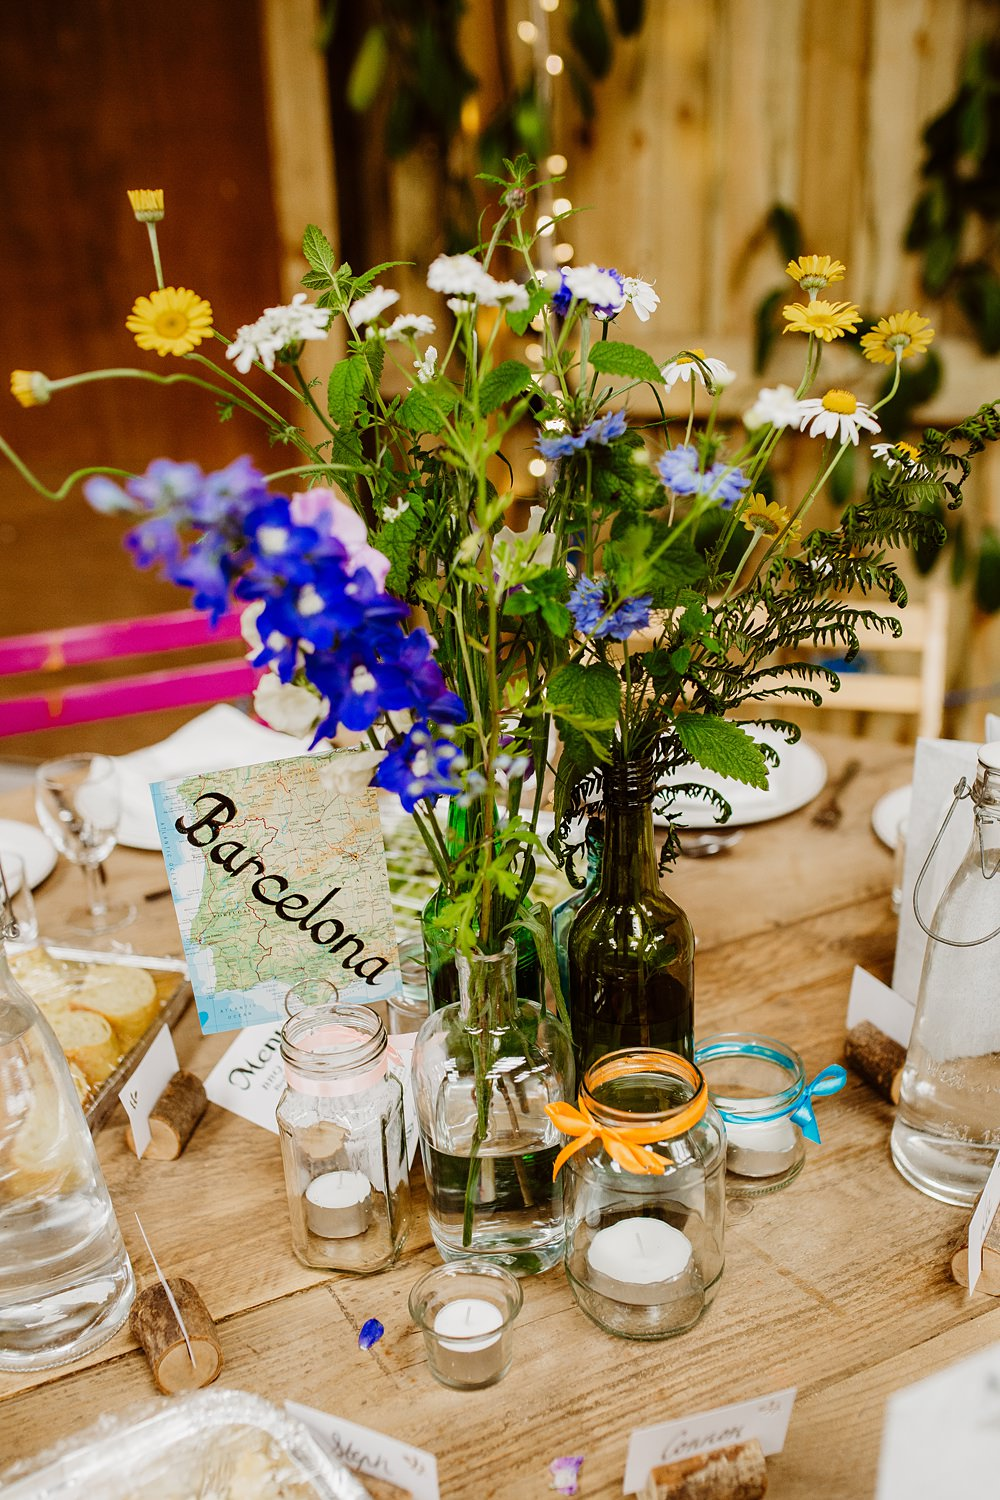 Wildflowers Flowers Bottles Centrepiece Decor Decoration Canonteign Falls Wedding Holly Collings Photography